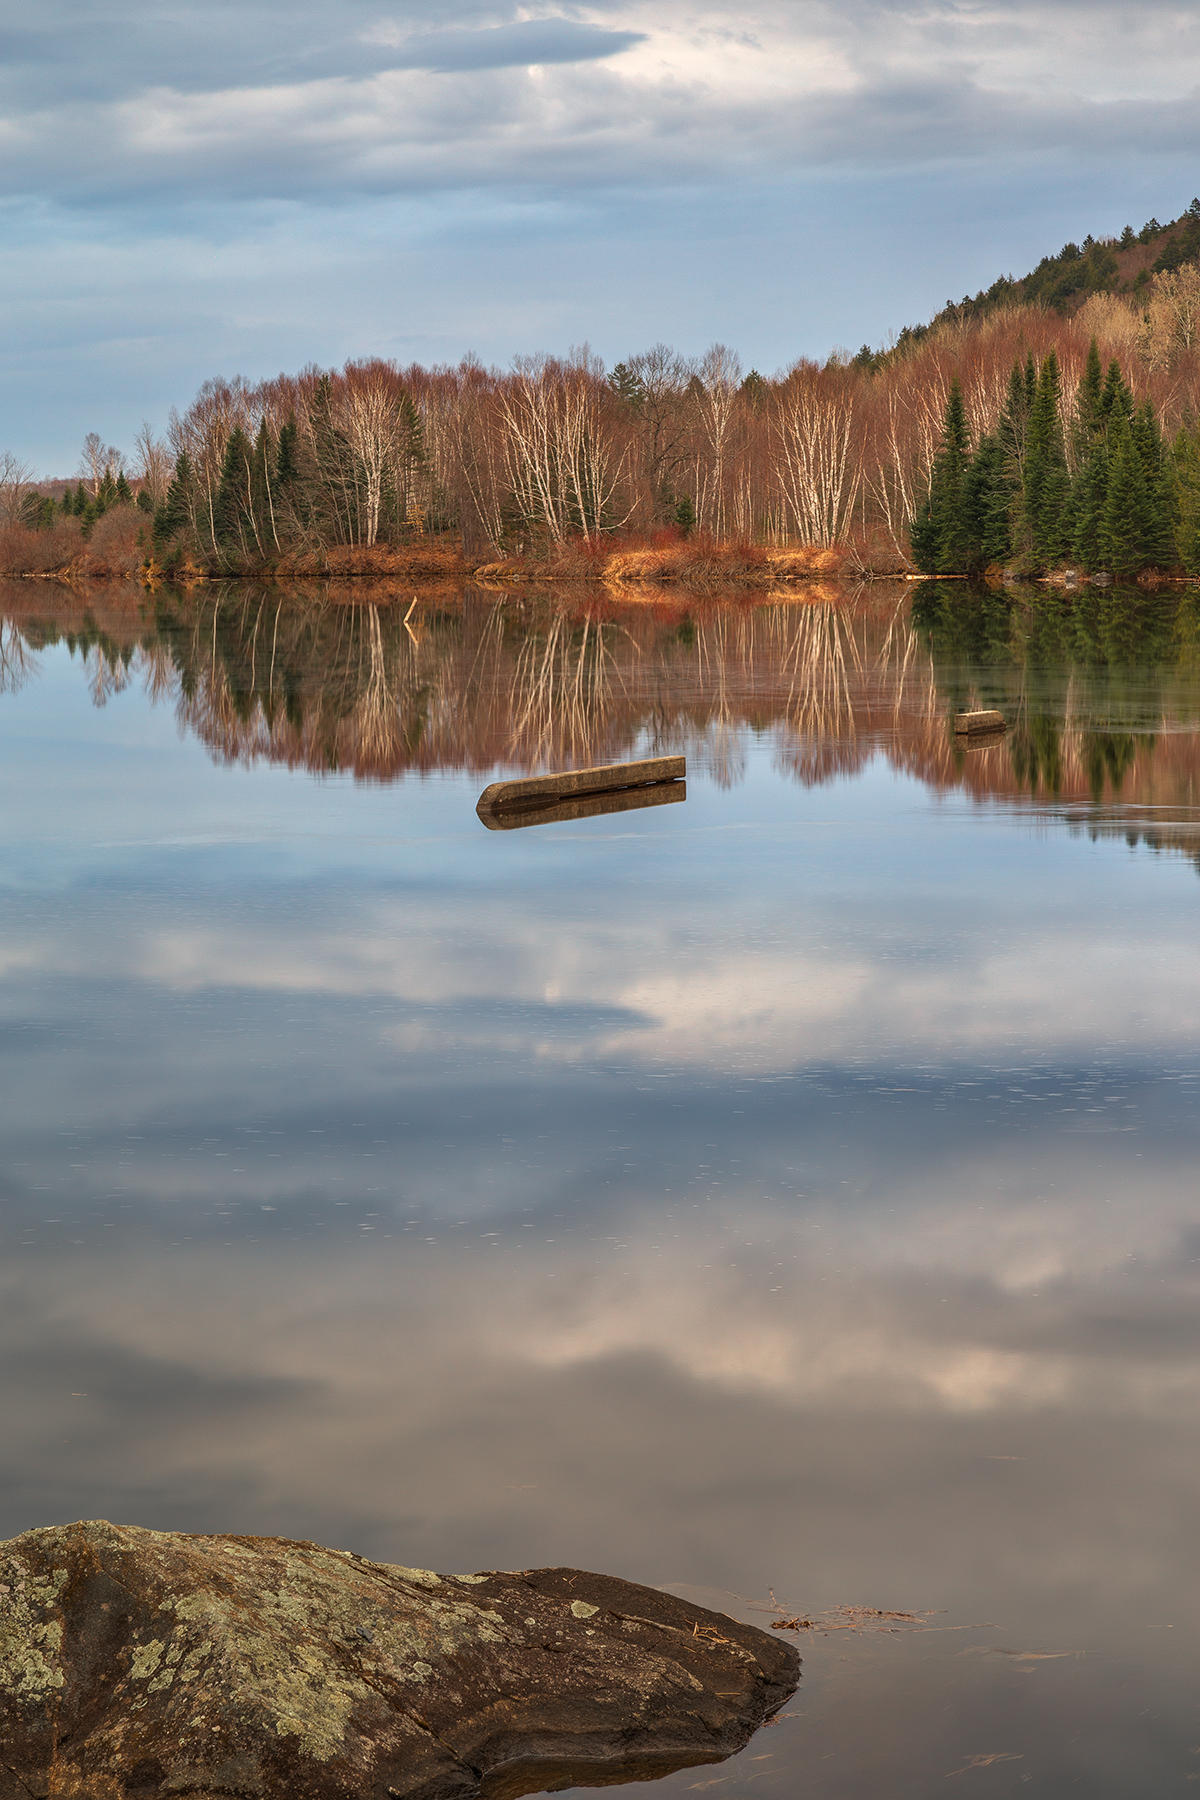 Ritchie River Reflections - HDR, Atmosphere, Range, Scene, Saint, HQ Photo